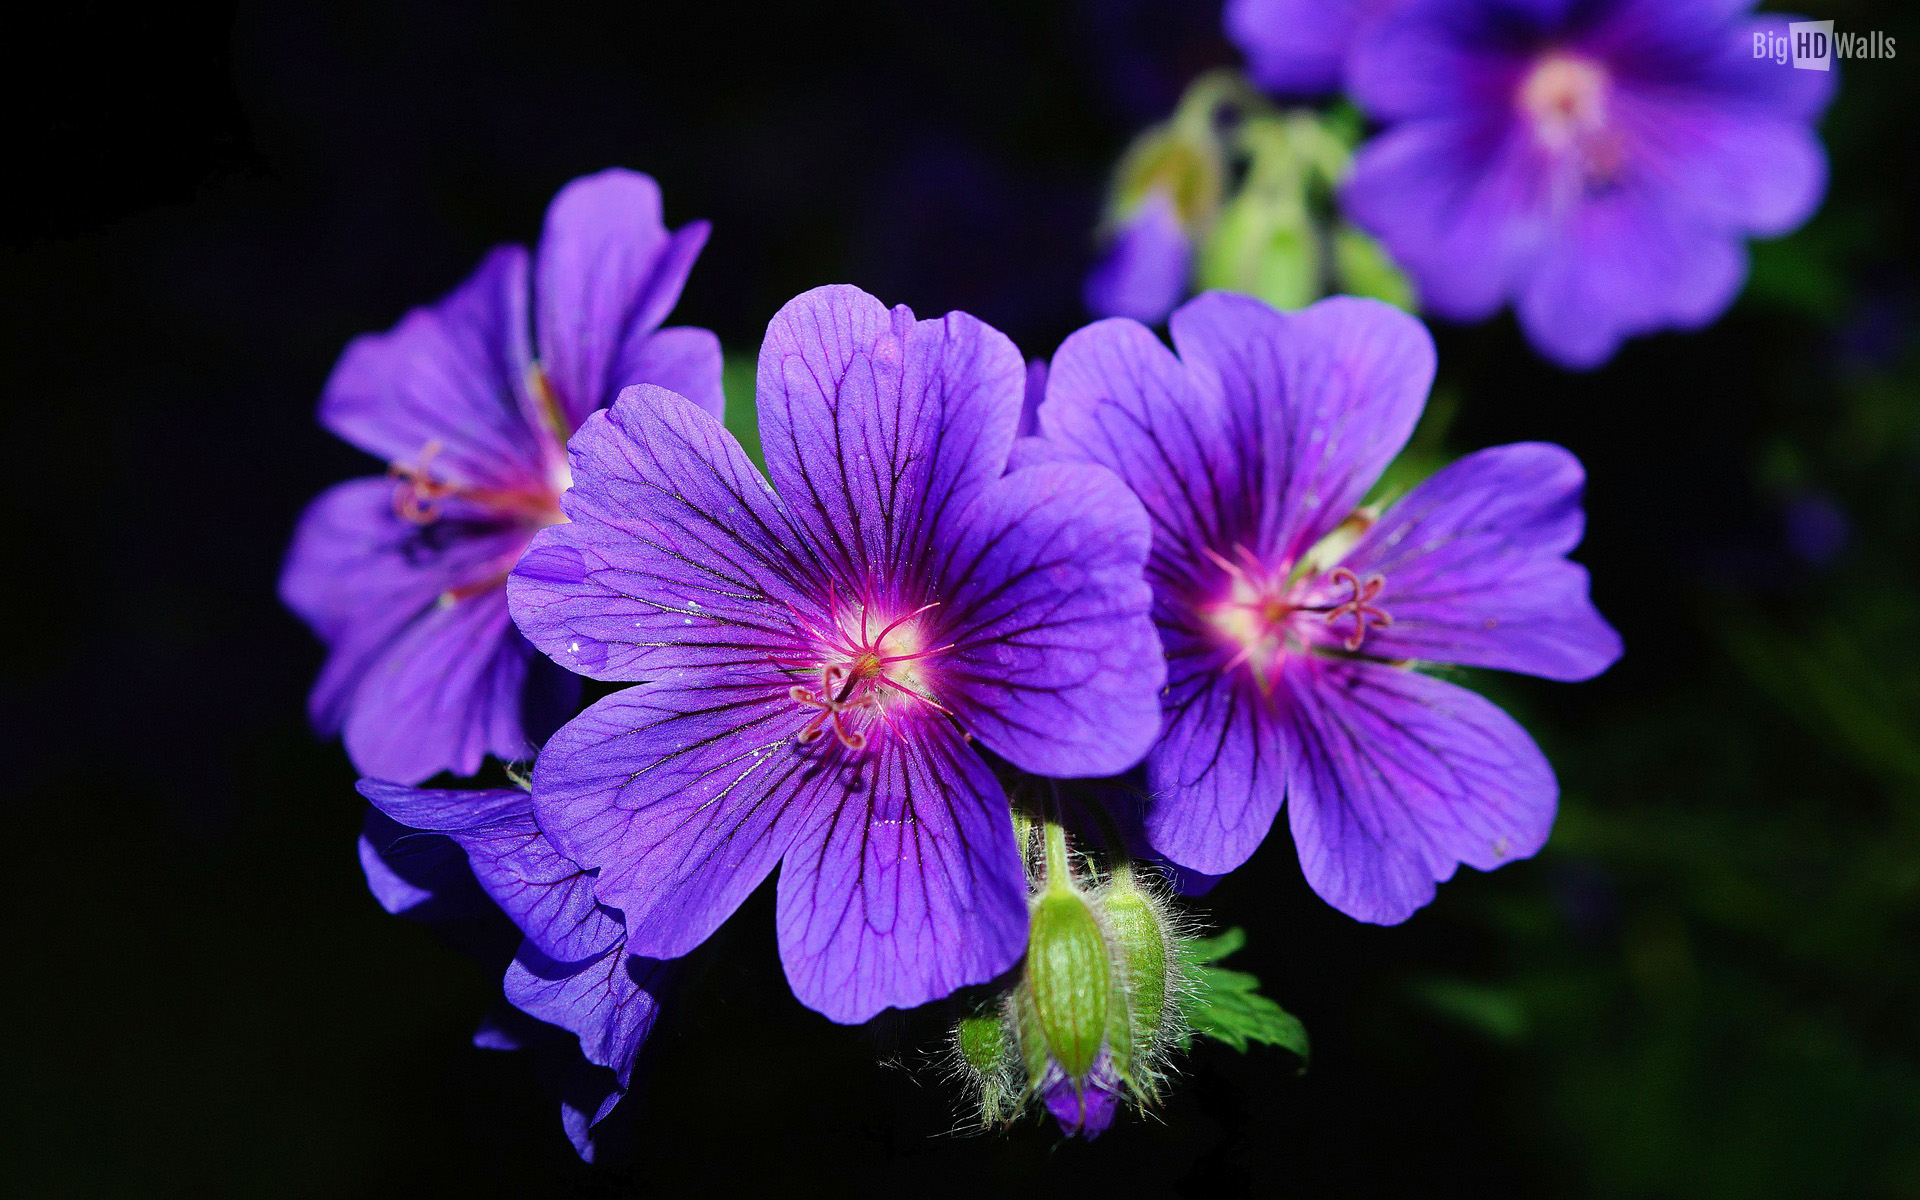 Violet Purple Flower Image